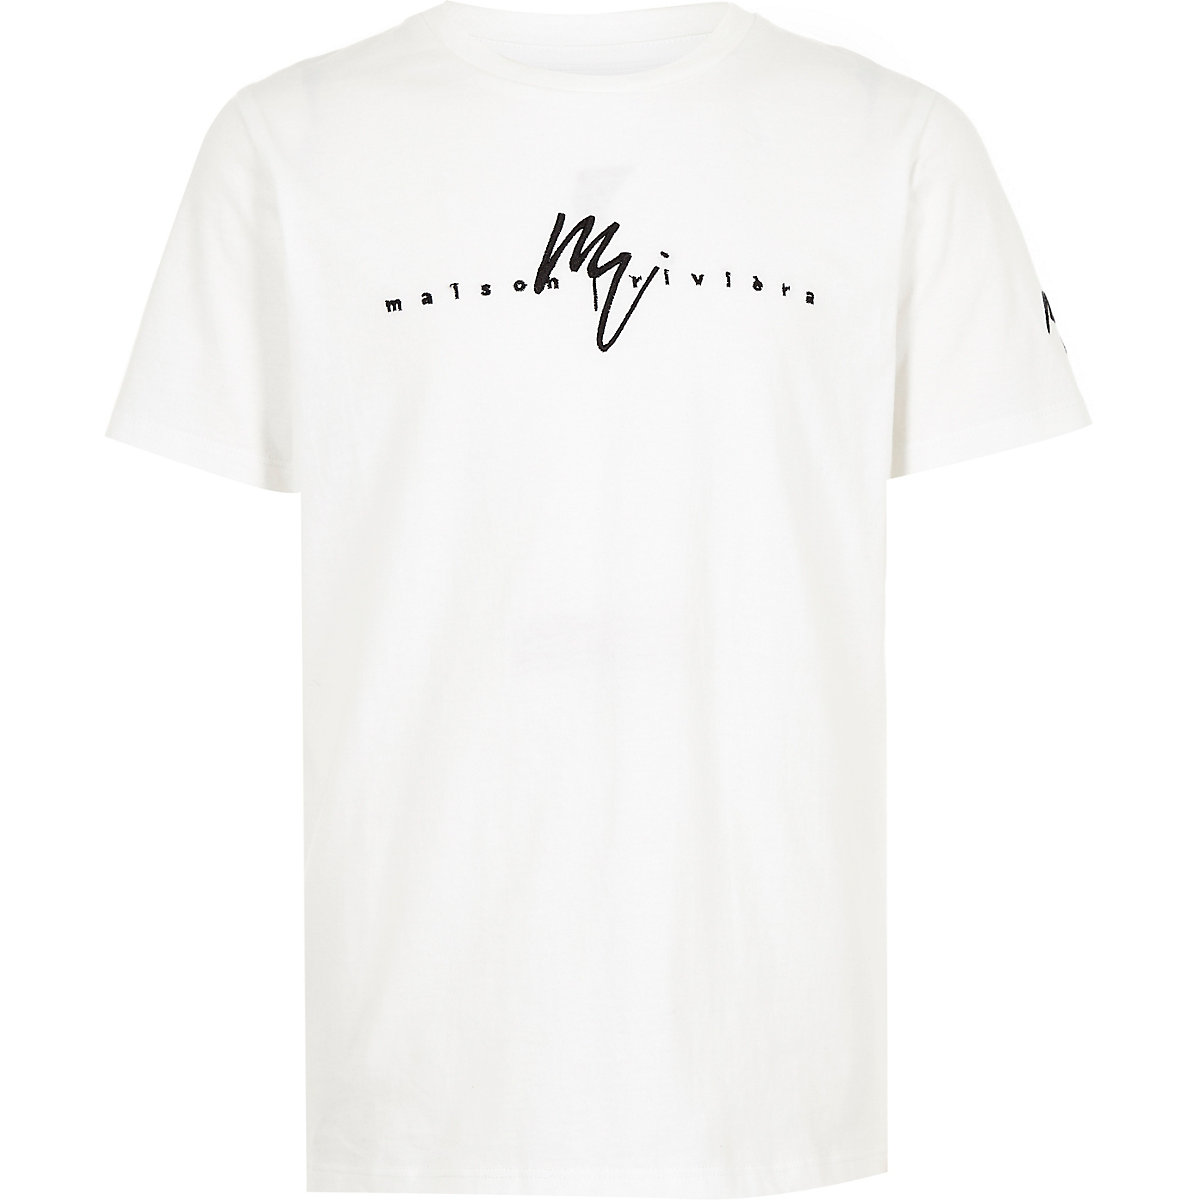 Boys white 'Maison Riviera' T-shirt